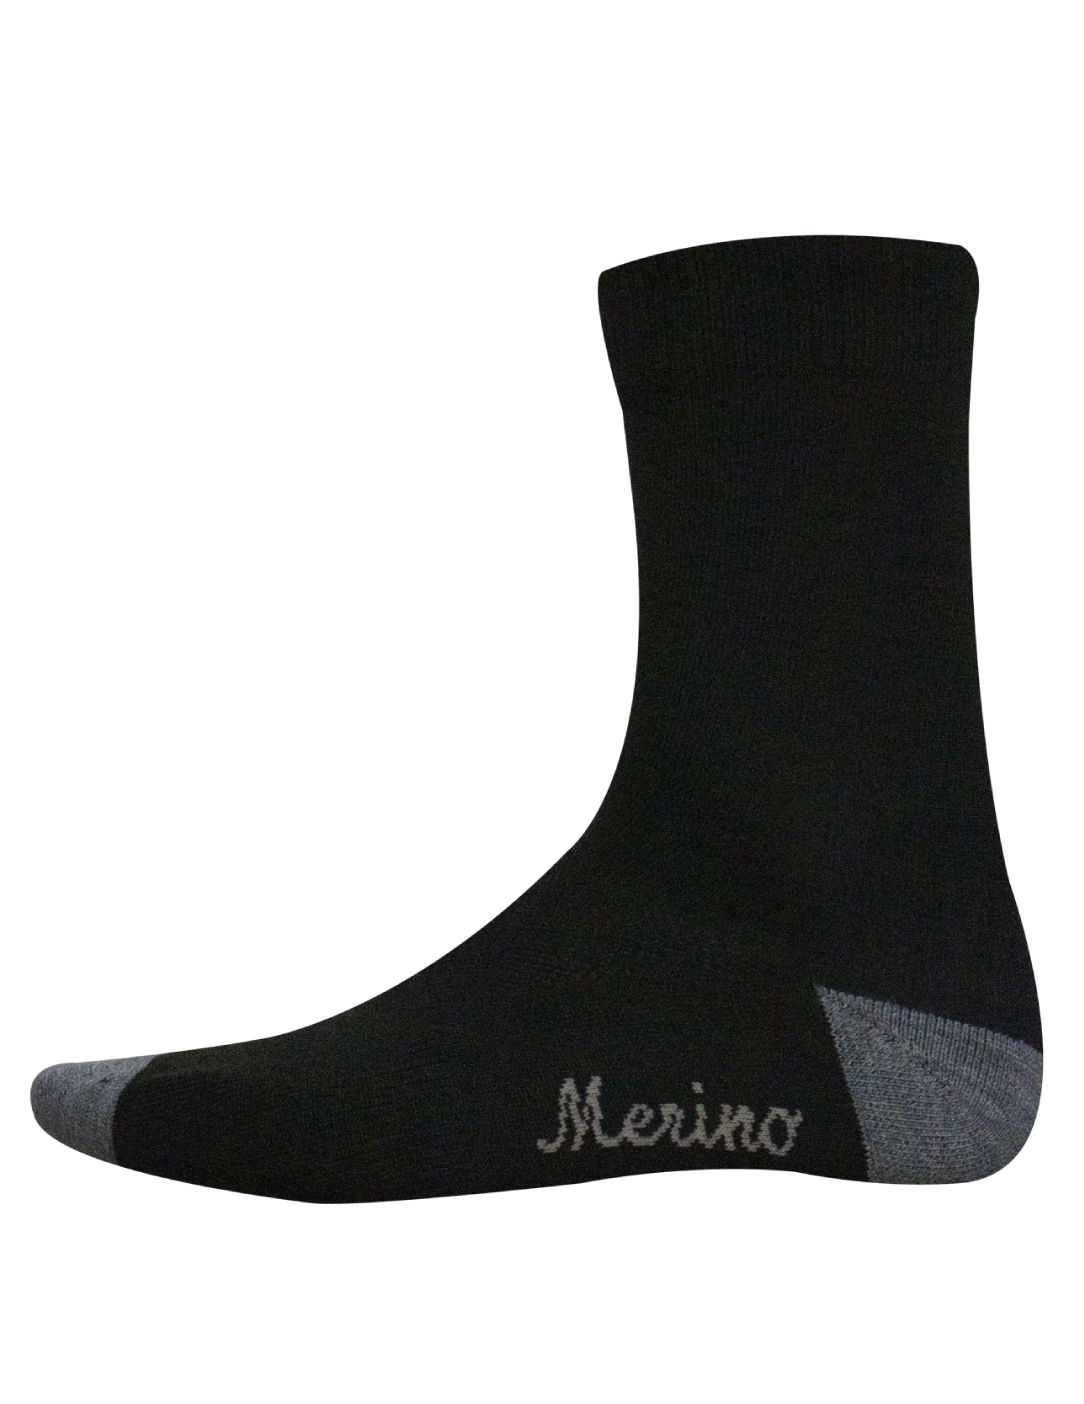 Bora Merino Winter Socks - Black